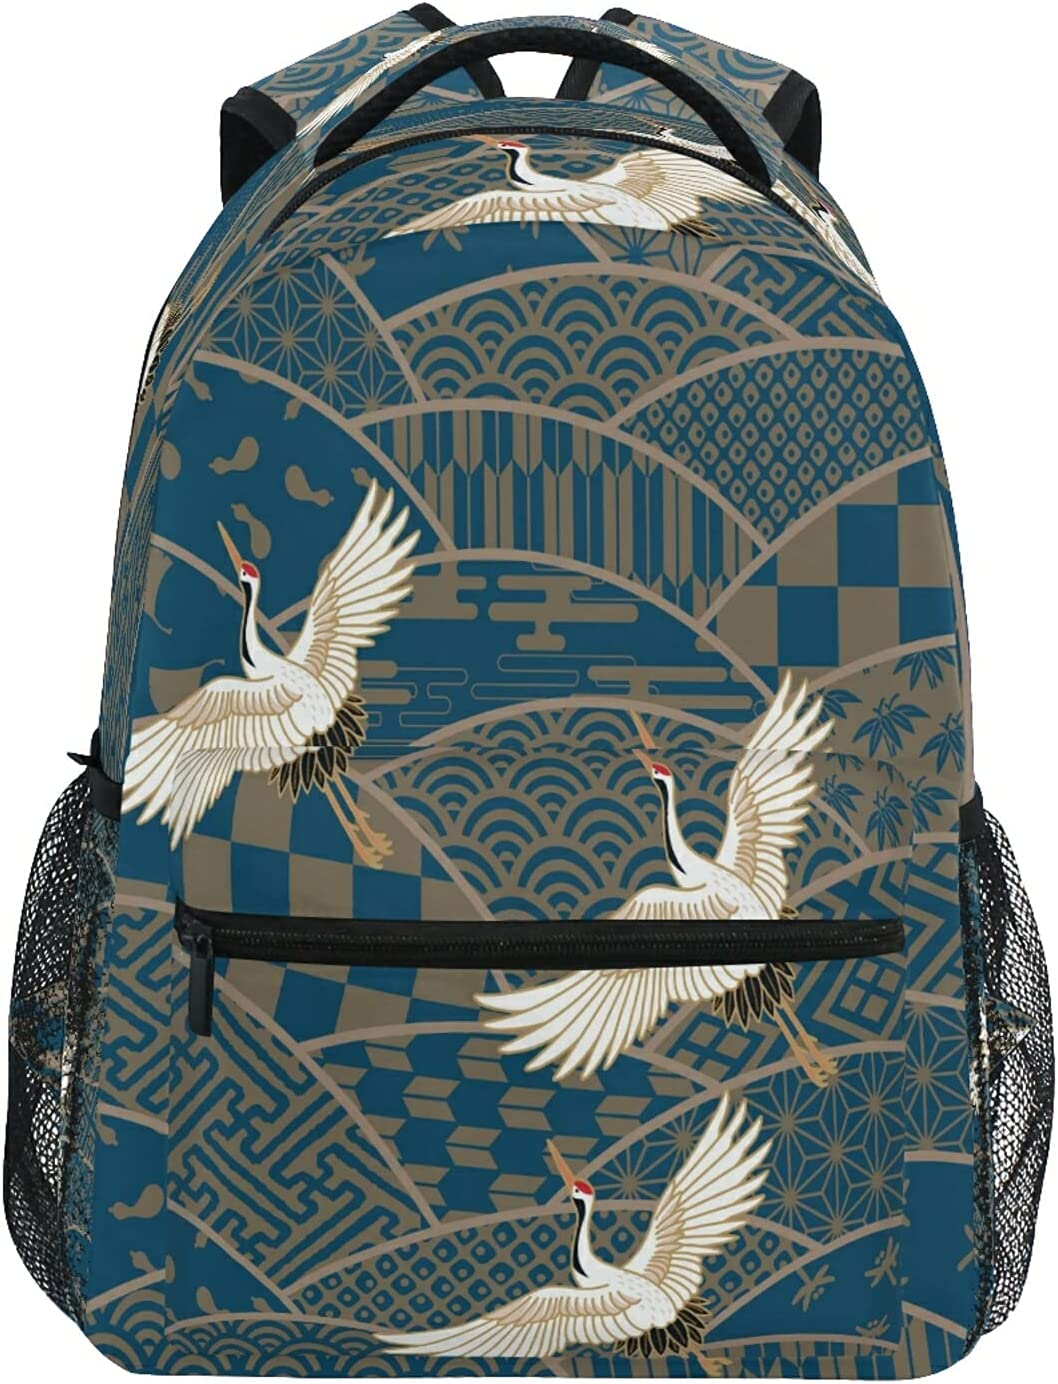 UWLIFE Max 67% OFF Limited time cheap sale Japanese Bird Crane Pattern Boy for Girl School Backpack